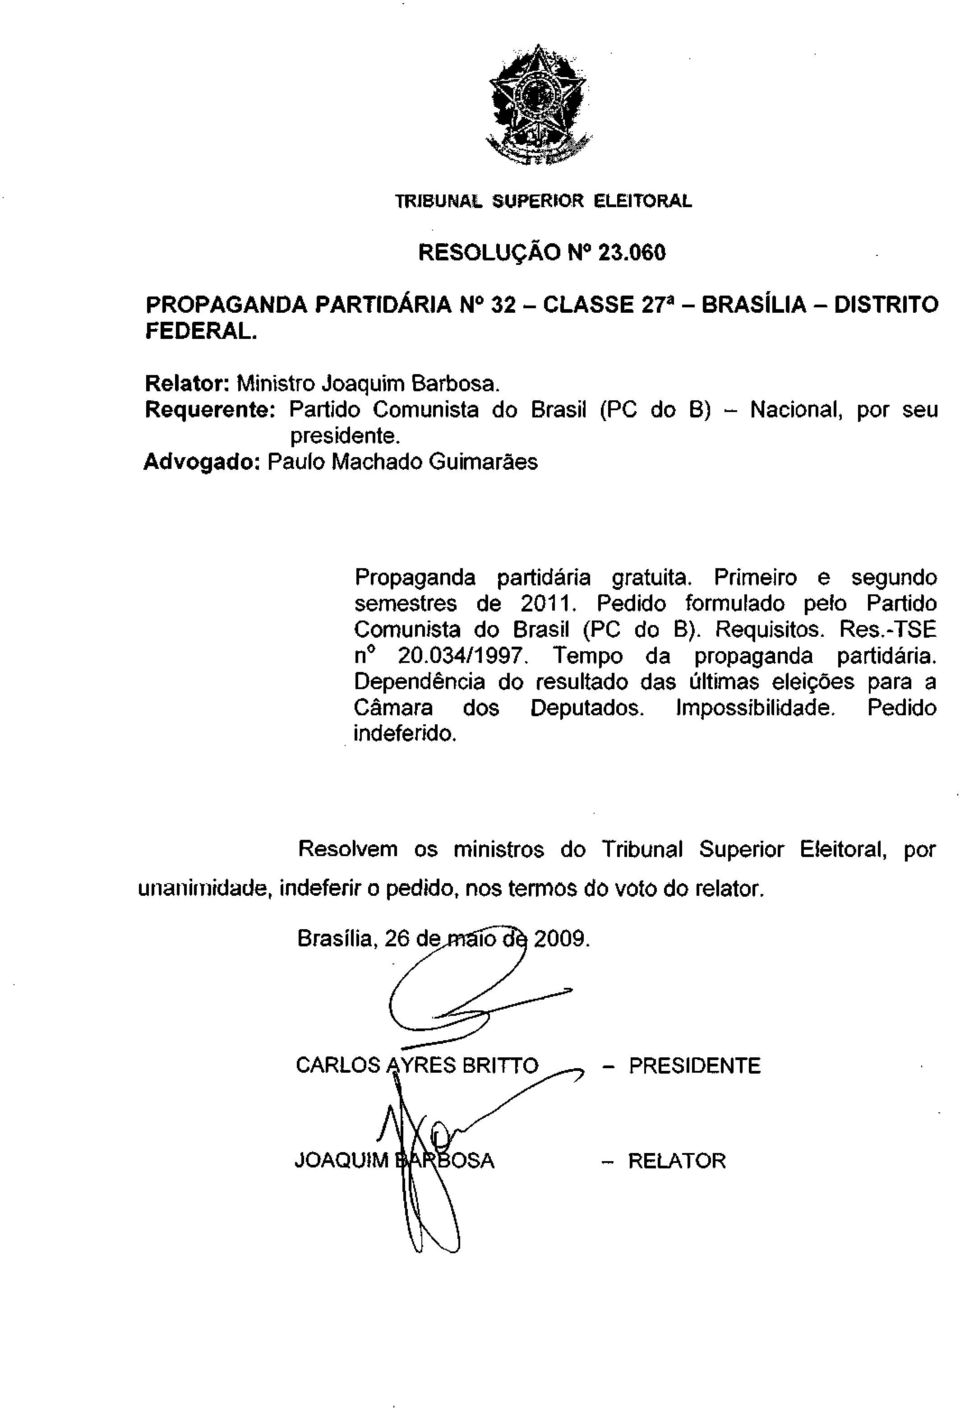 Pedido formulado pelo Partido Comunista do Brasil (PC do B). Requisitos. Res.-TSE n 20.034/1997. Tempo da propaganda partidária.